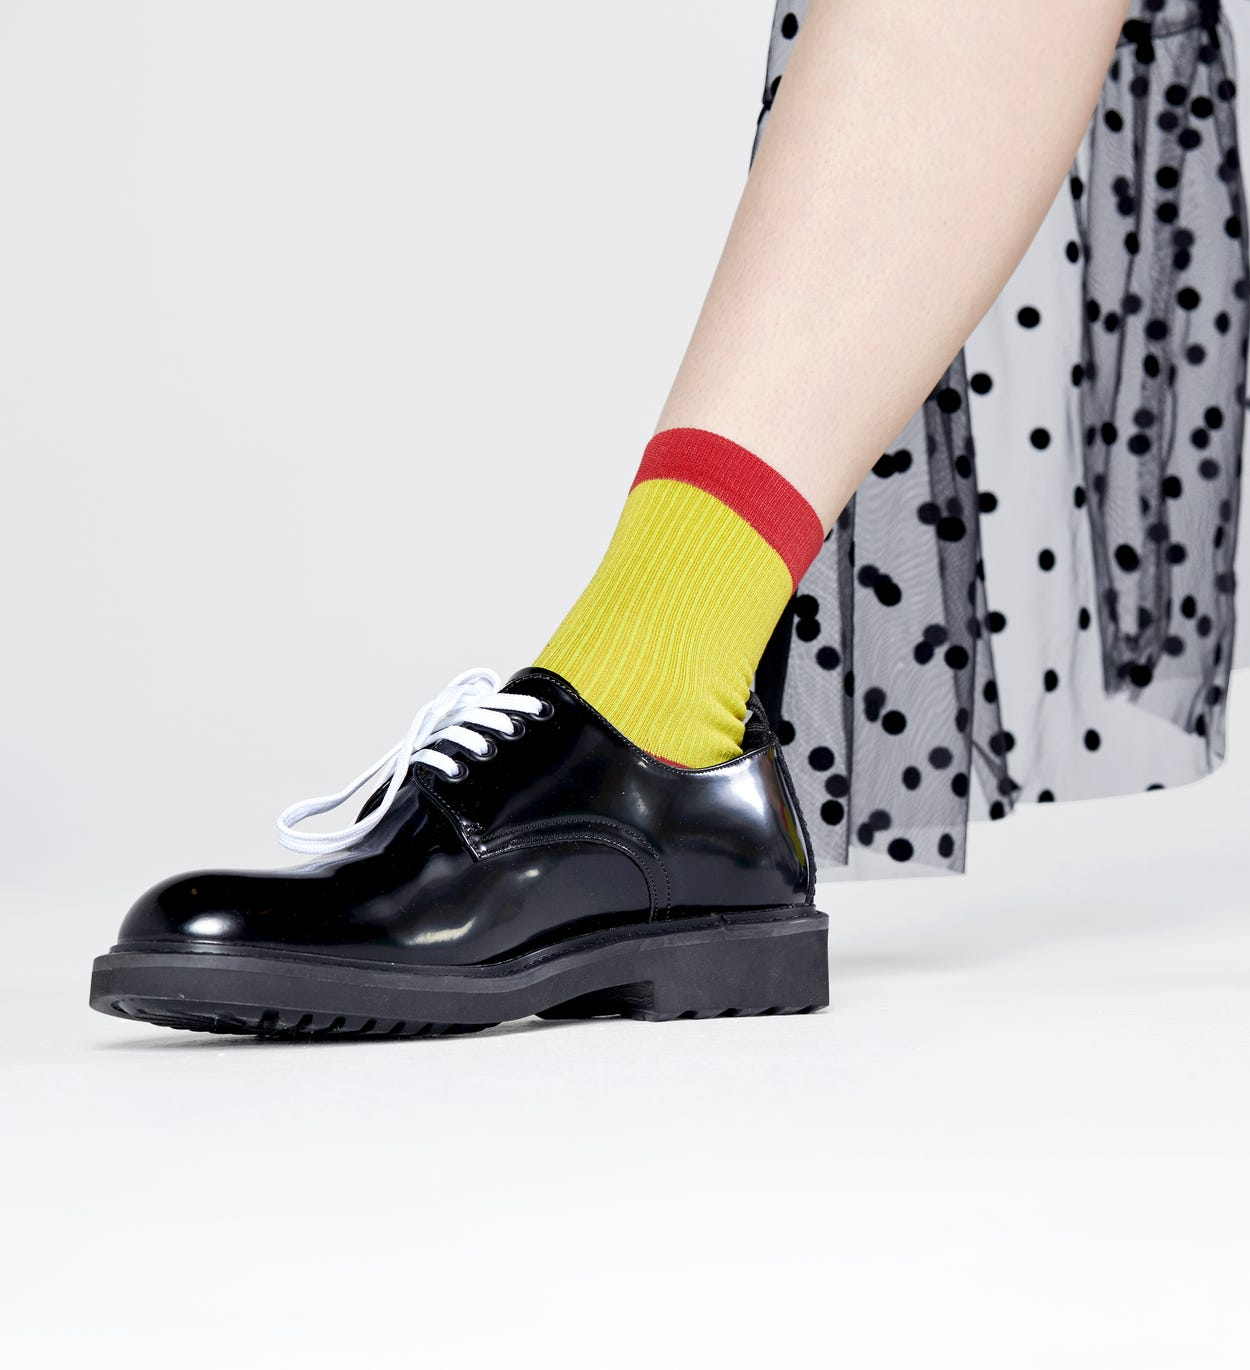 Lily Ankle Socks, Yellow  - Hysteria | Happy Socks